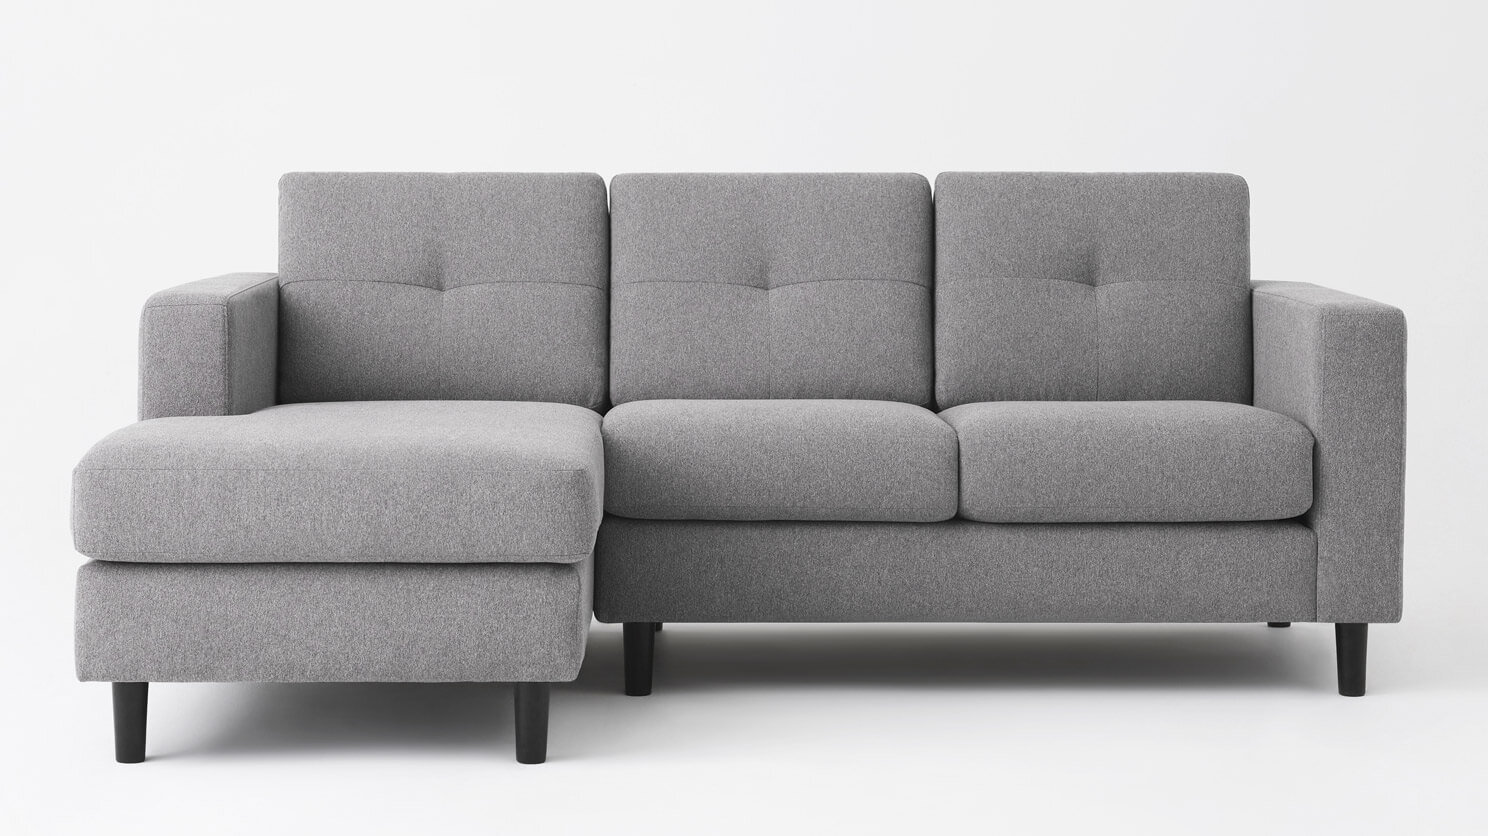 Solo Sectional Sofa Mila Grey Fabric M Collection Home